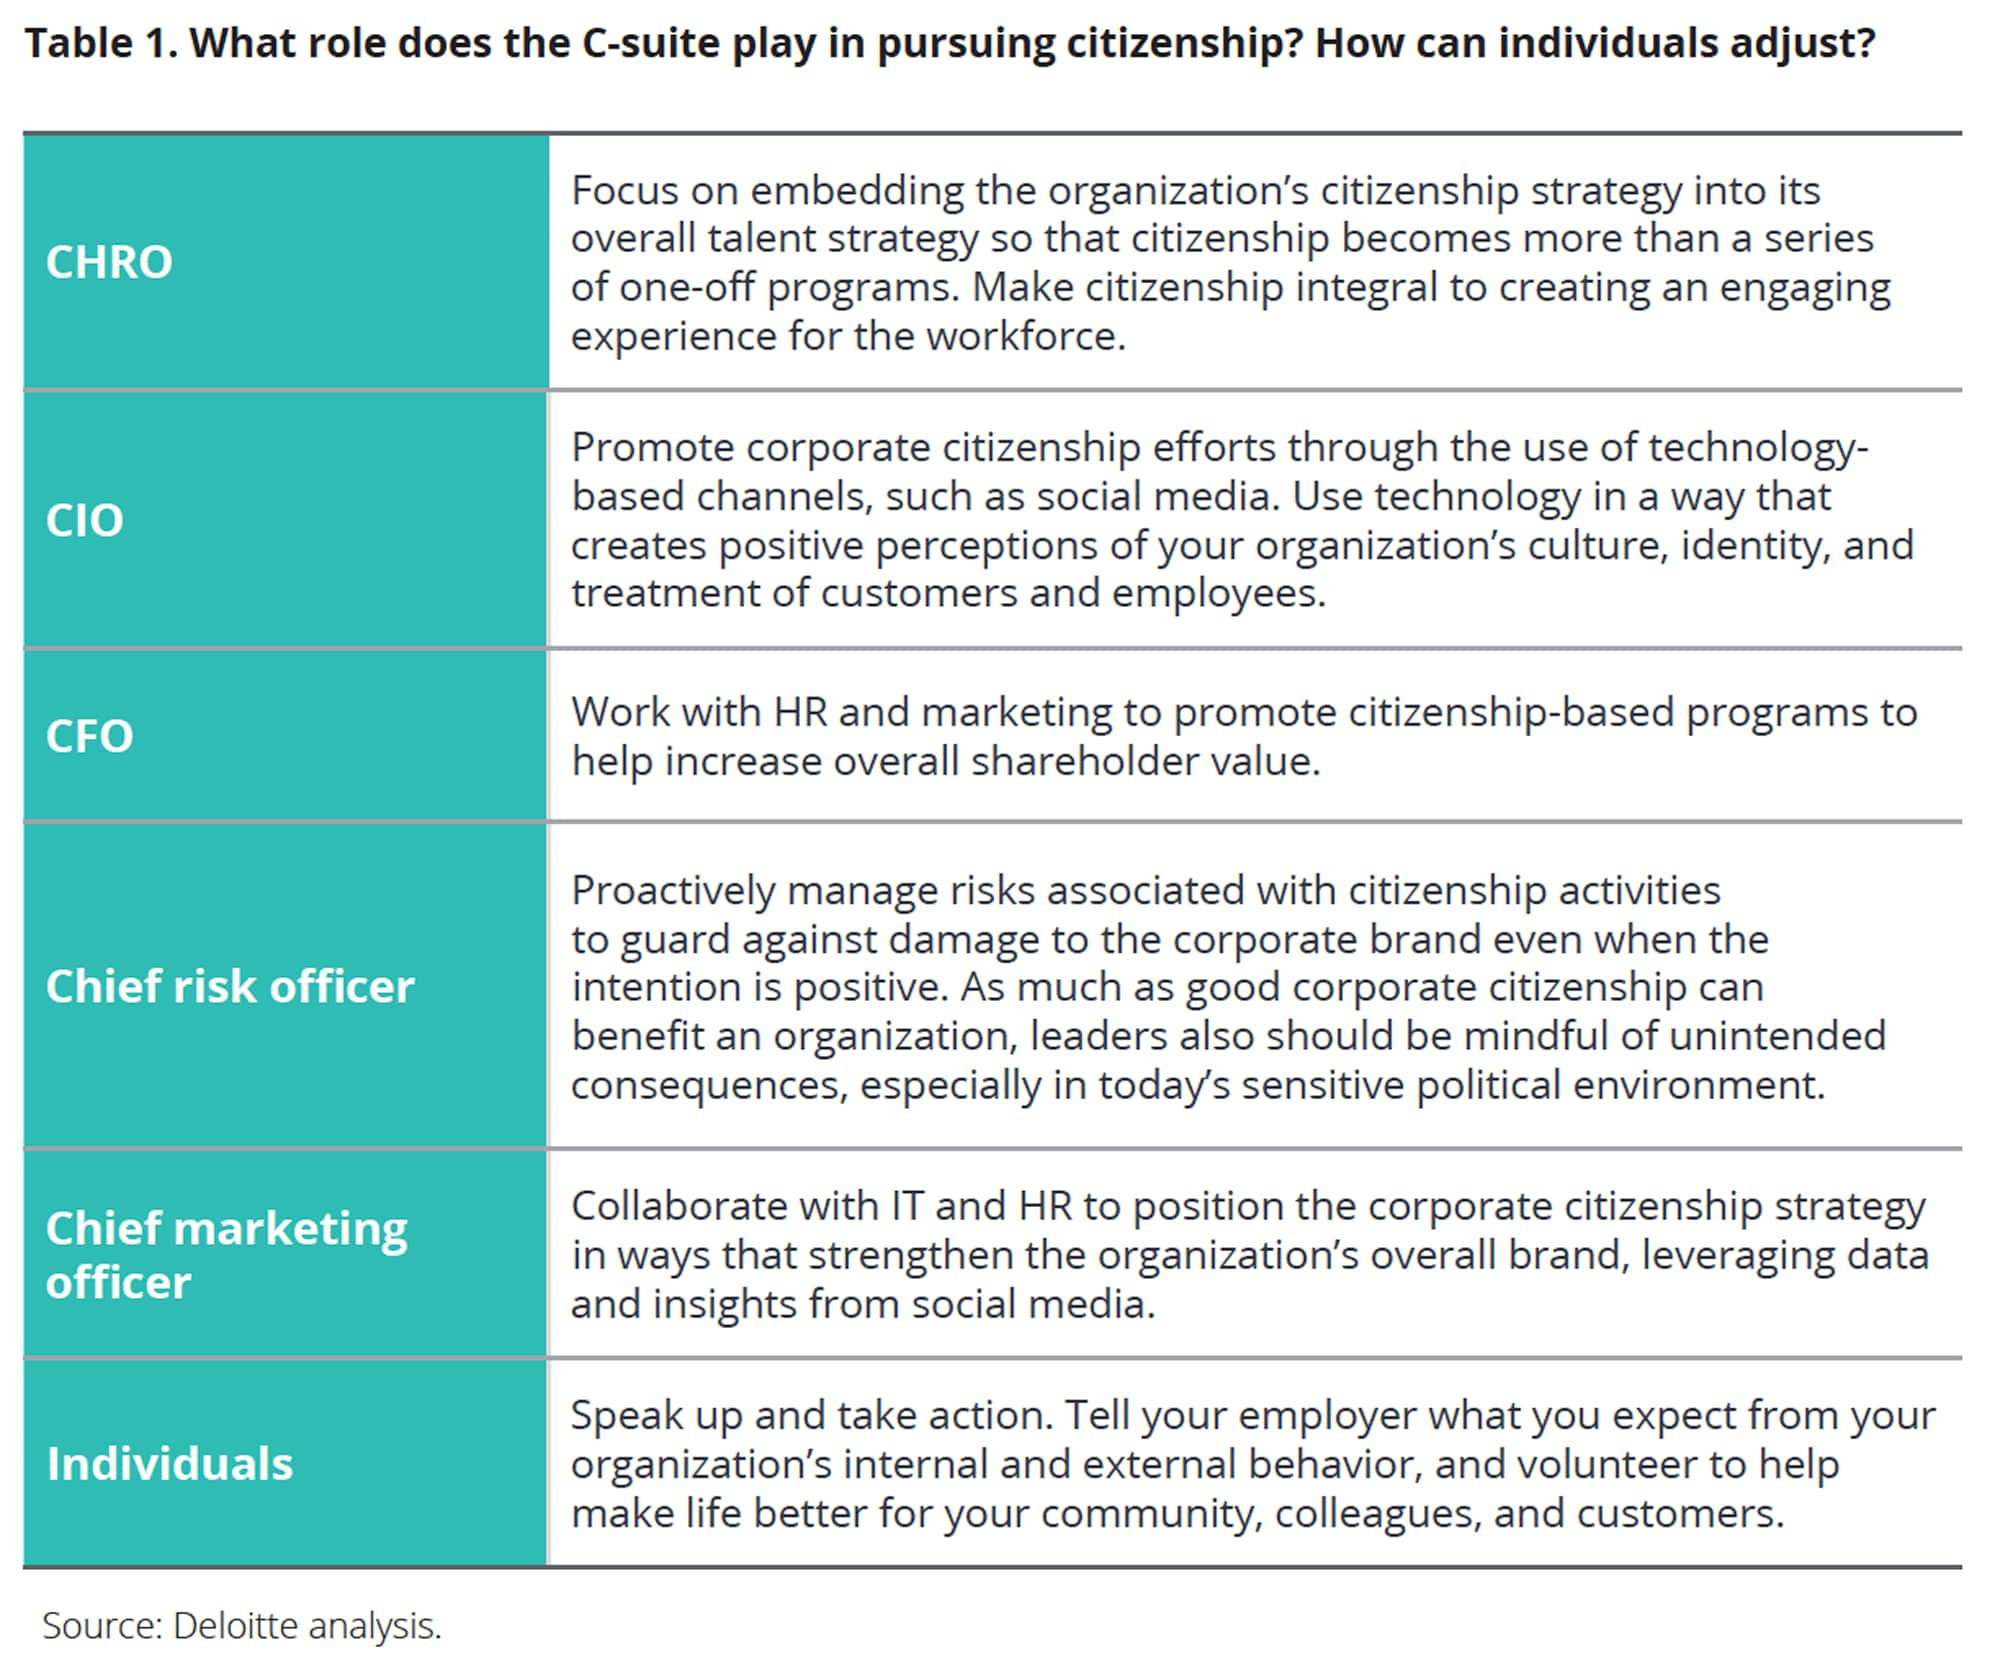 What role does the C-suite play in pursuing citizenship? How can individuals adjust?